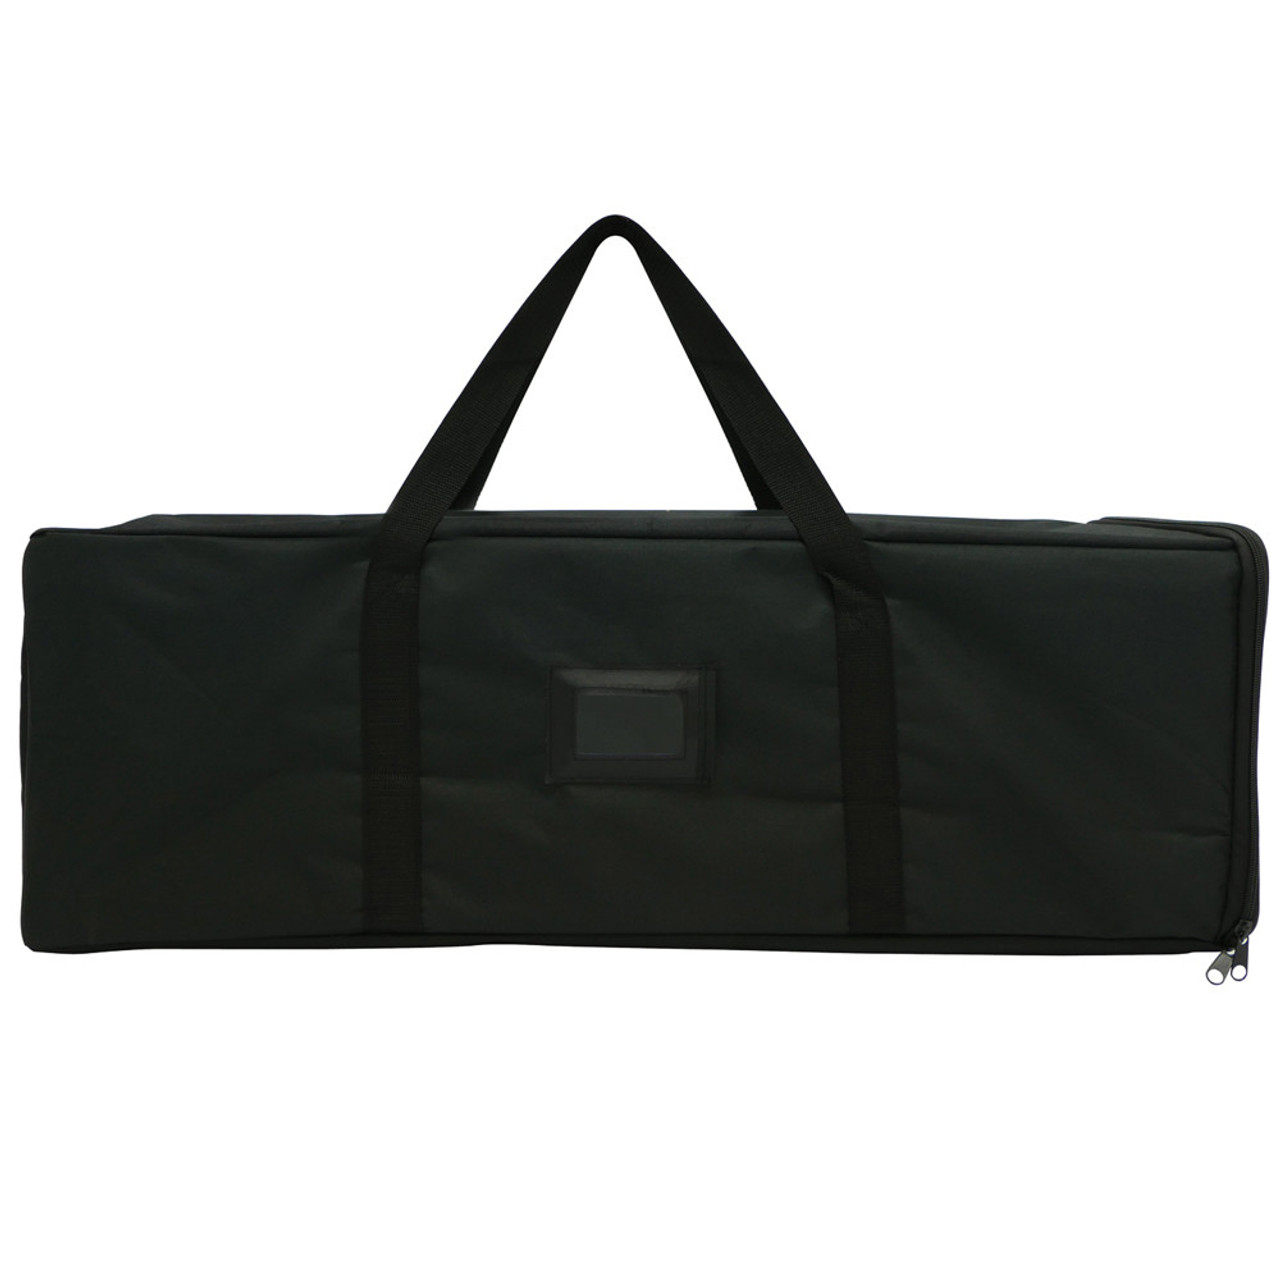 Standard travel bag (included)